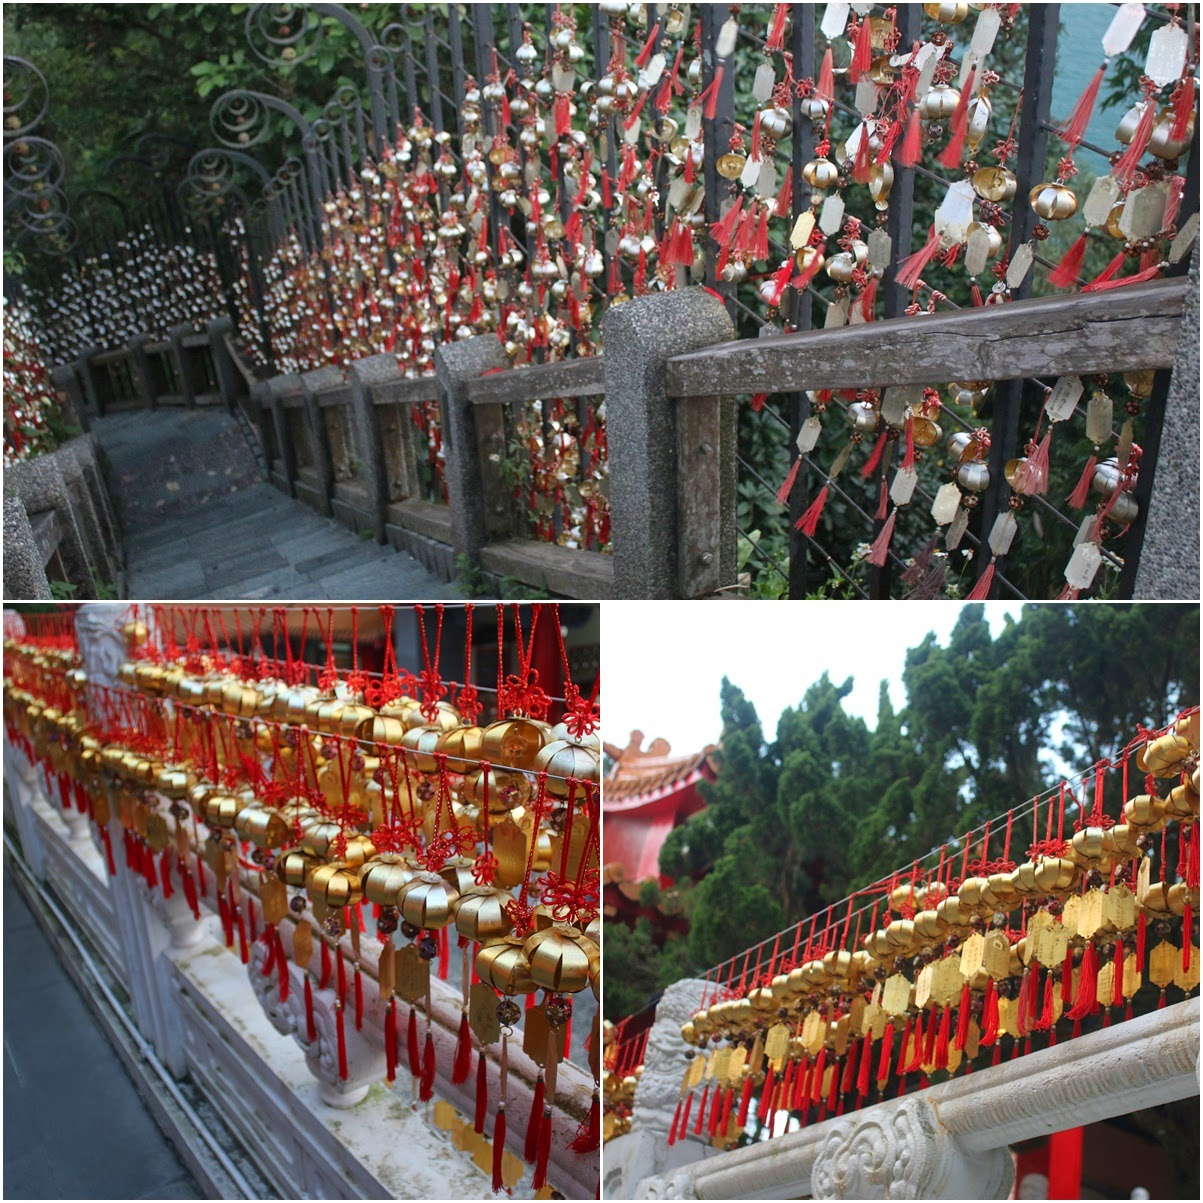 Blessing wind bells are hung on wrought-iron ladders which represent the year of birth and hopefully your prayers will be granted at Wenwu Temple in Puli County of Taiwan